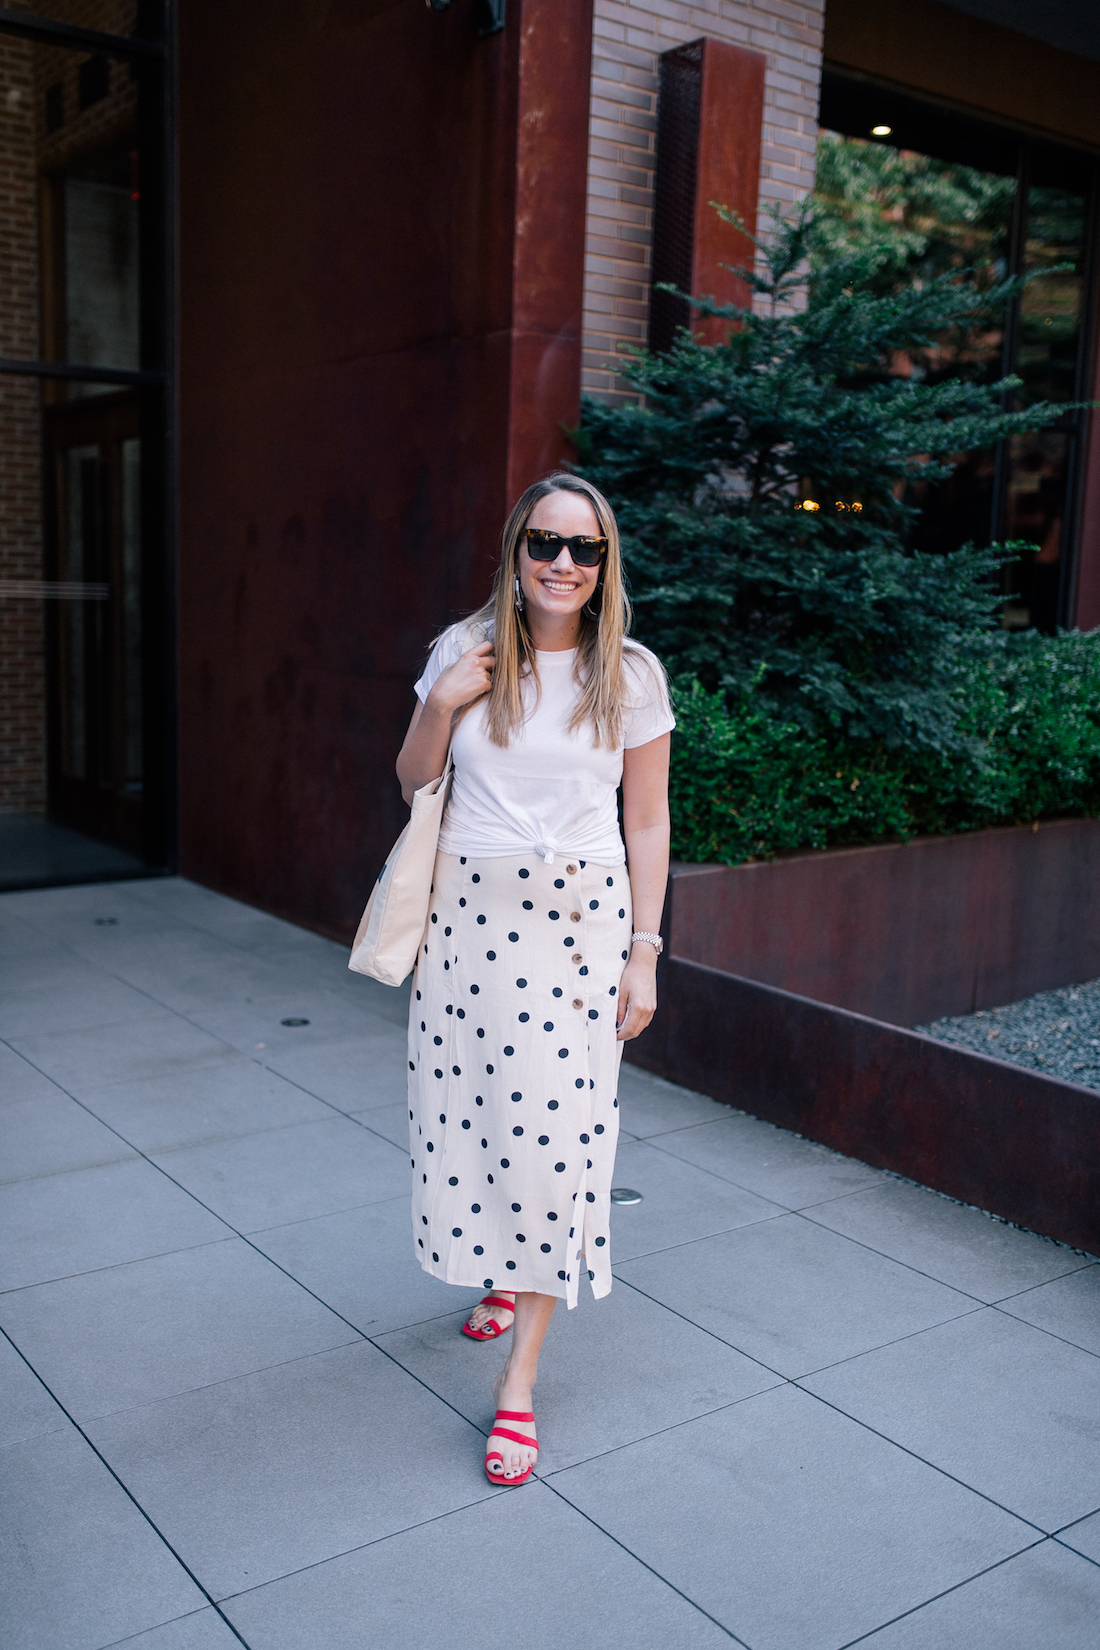 Outfit Details: White T-shirt // Polka Dot Skirt // Red Heels